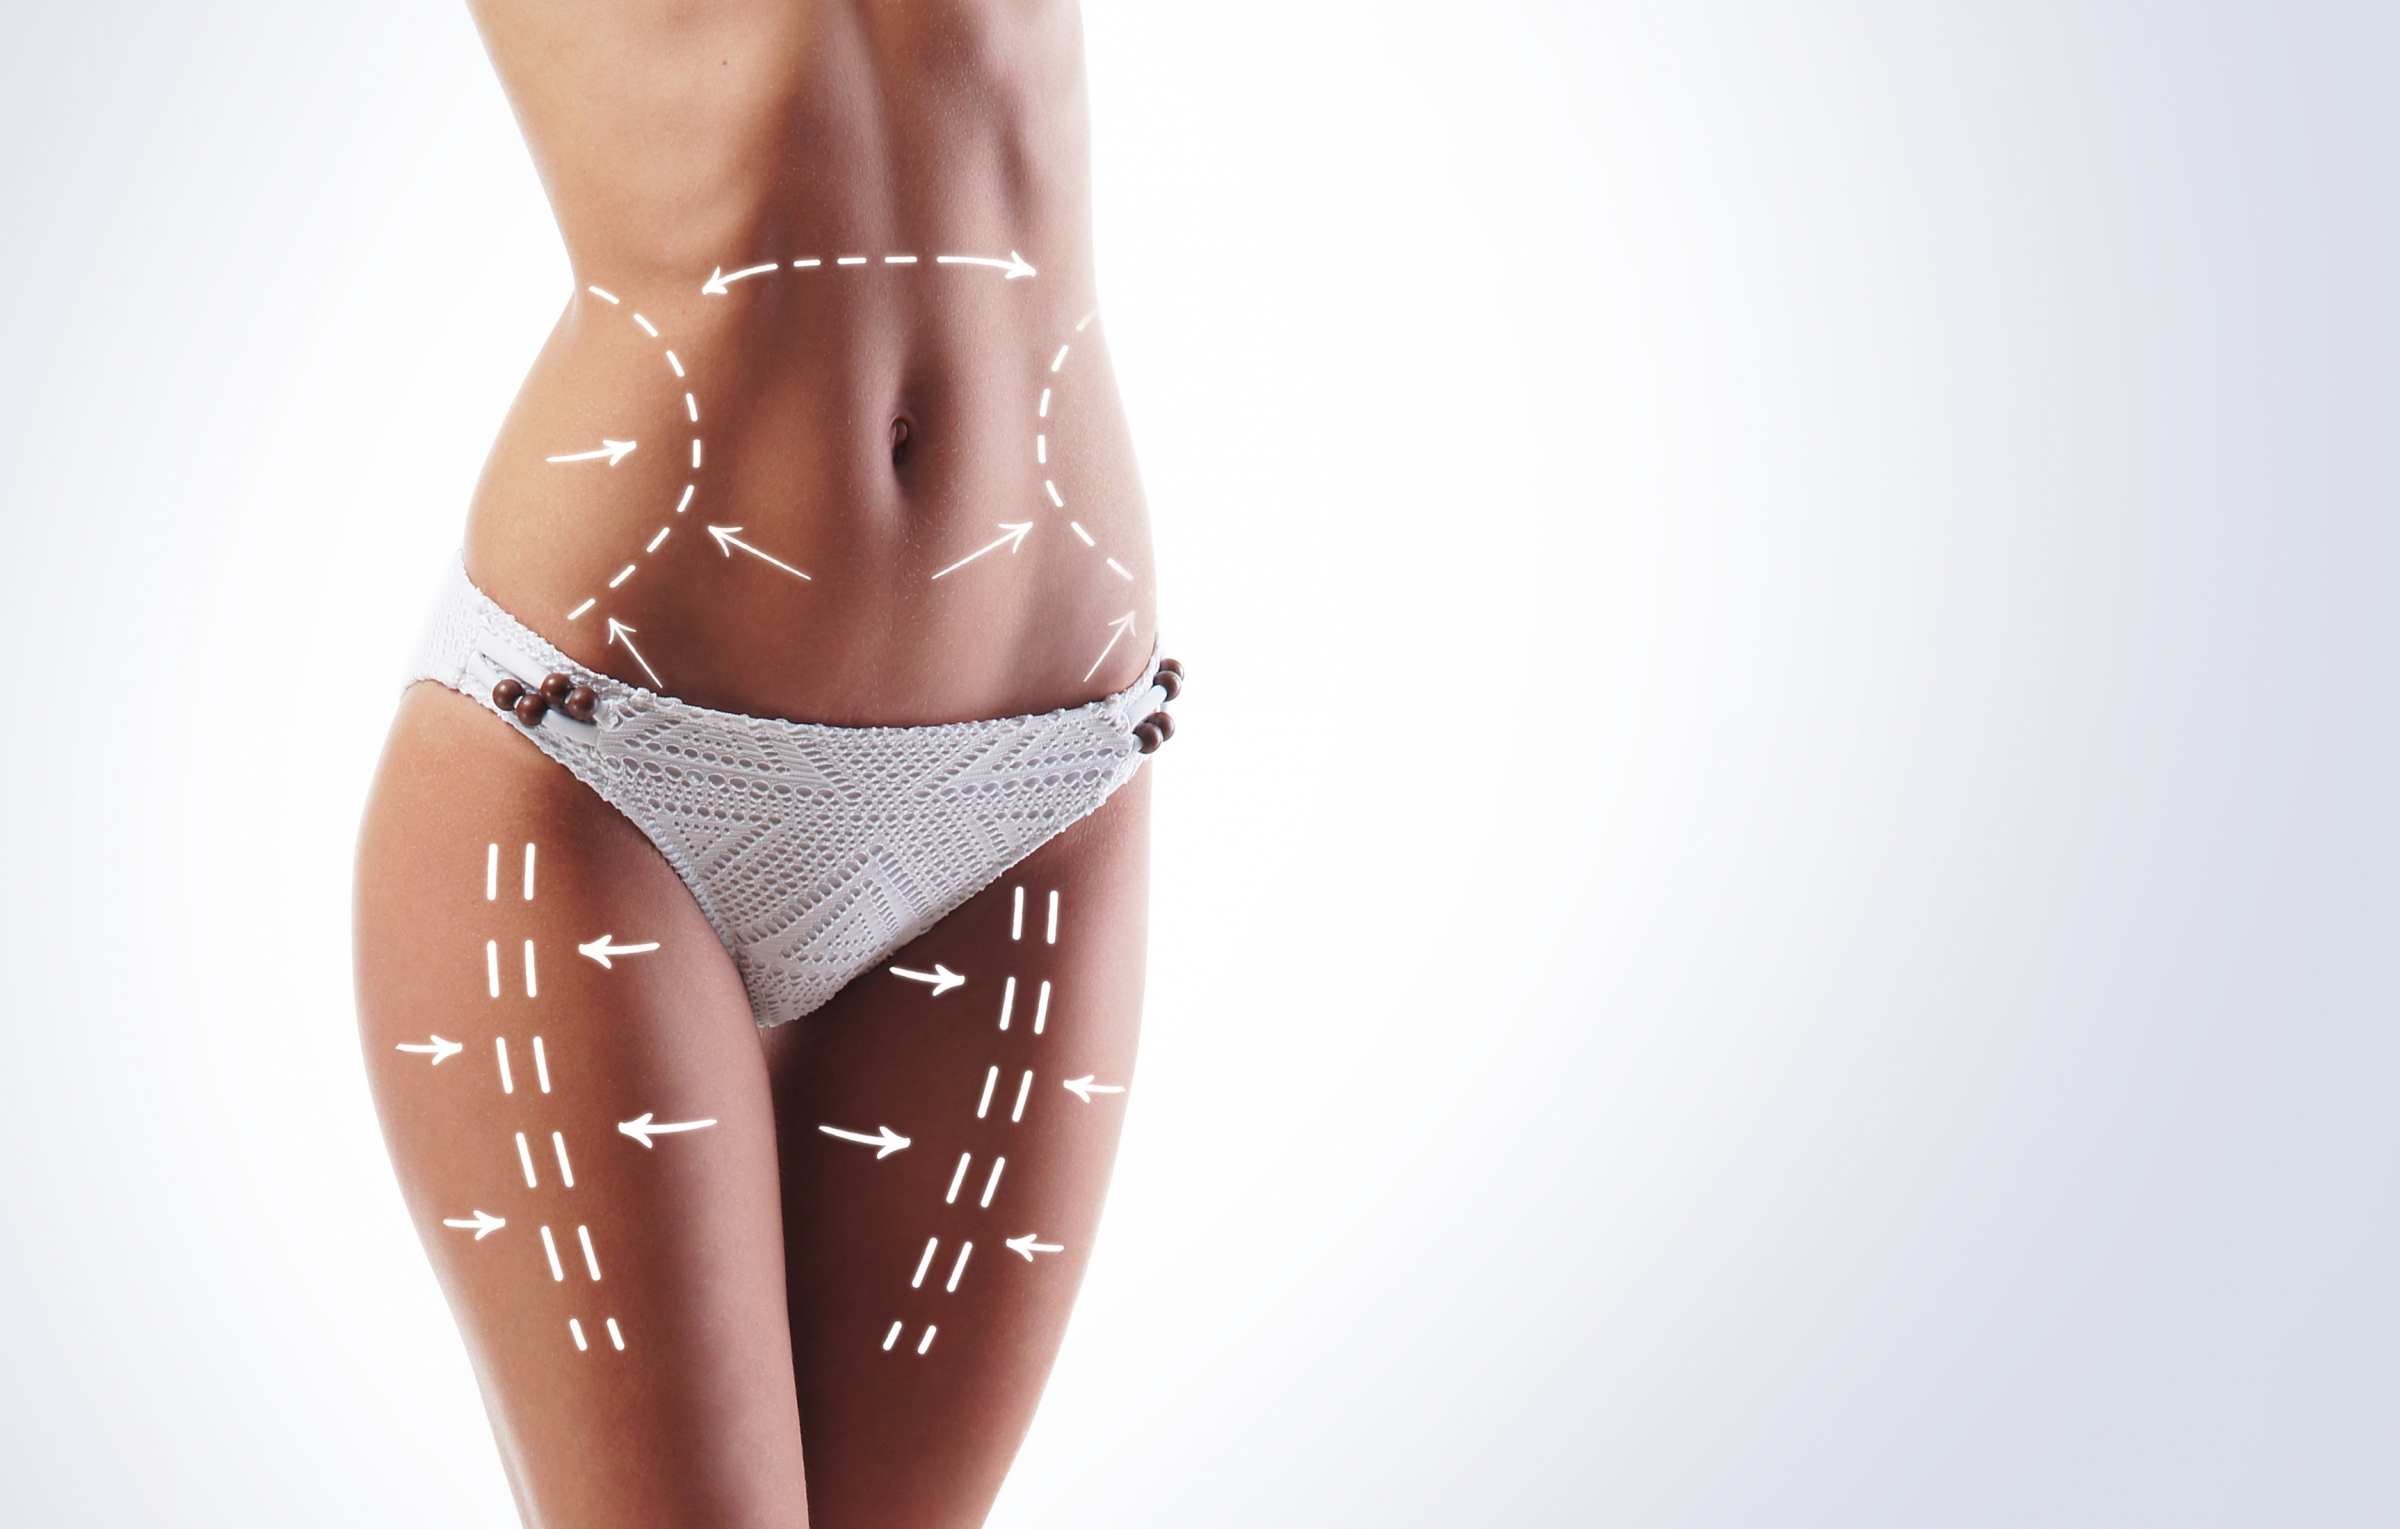 Miami Liposuction | Liposuction Surgeon